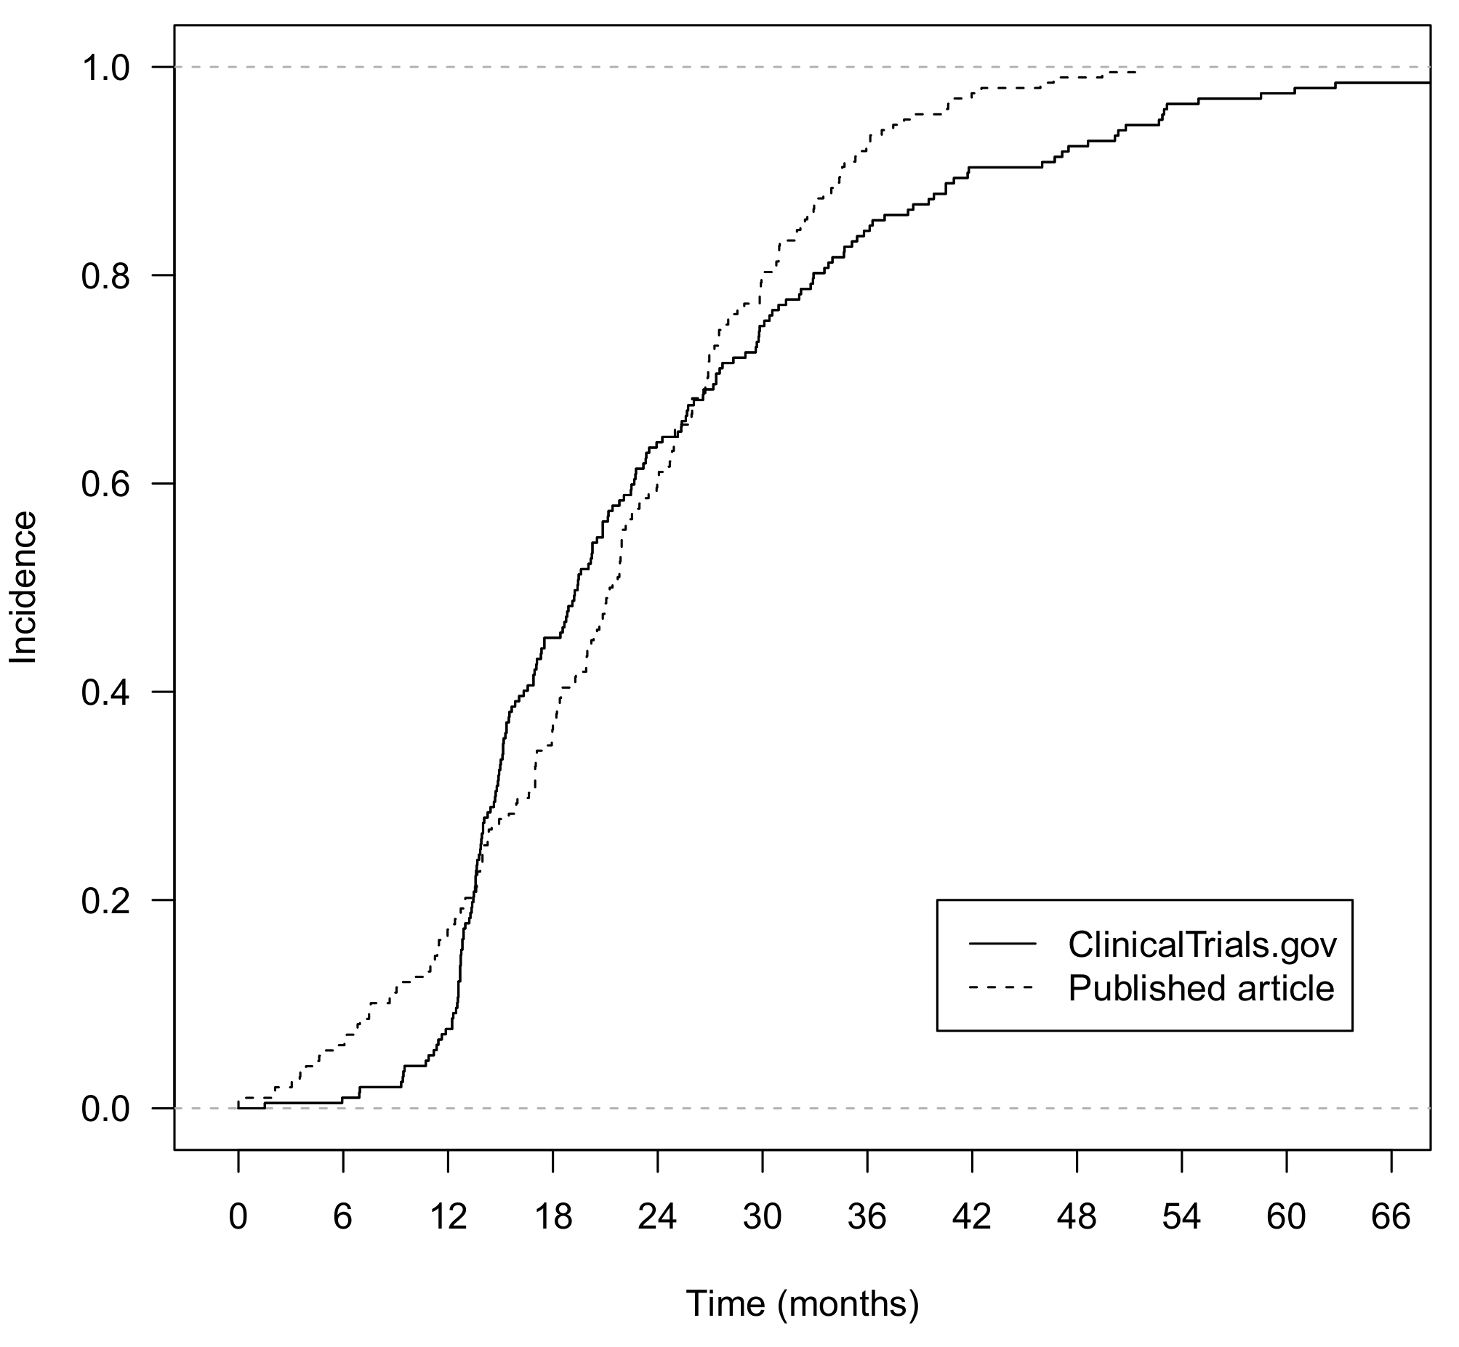 Comparison of time from primary completion date of the trial to posting of results at ClinicalTrials.gov and to online publication in journals for trials with both posted and published results.